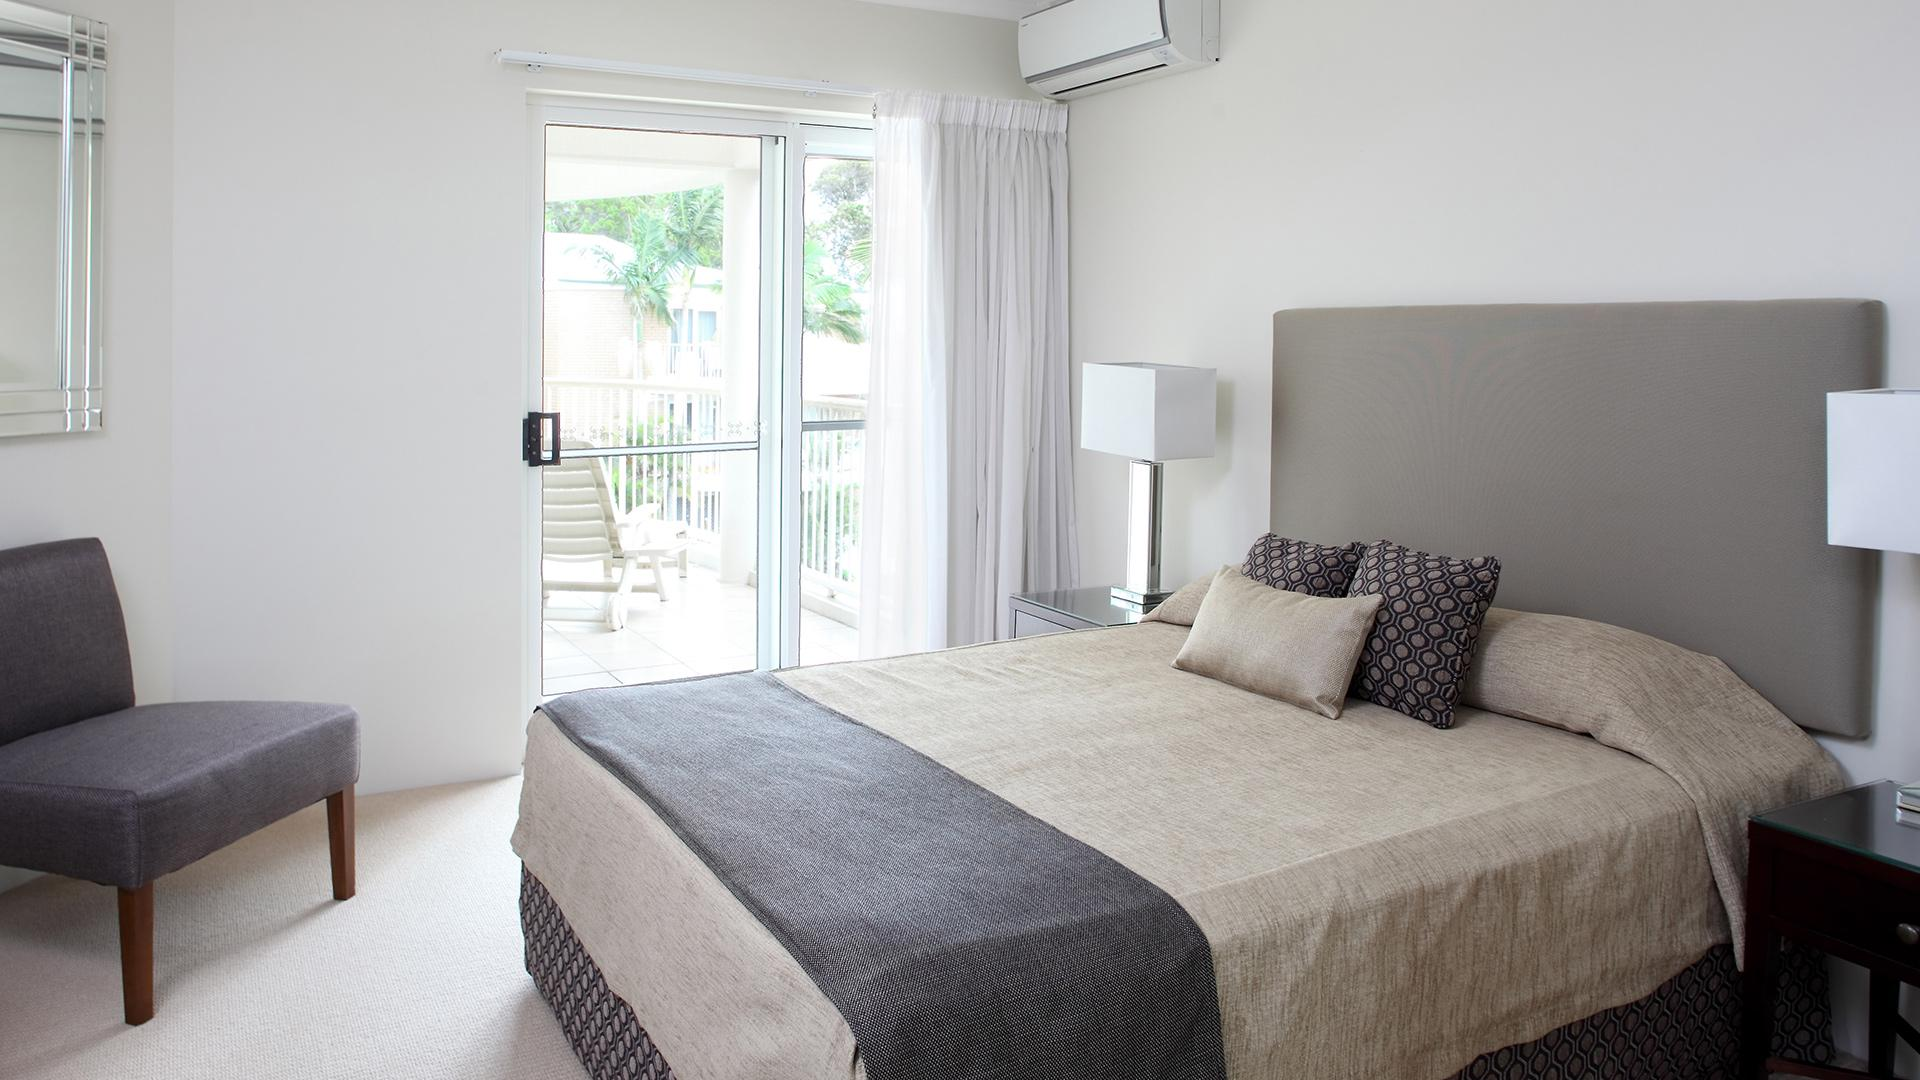 One-Bedroom Apartment  image 1 at Macquarie Lodge Apartments by Noosa Shire, Queensland, Australia